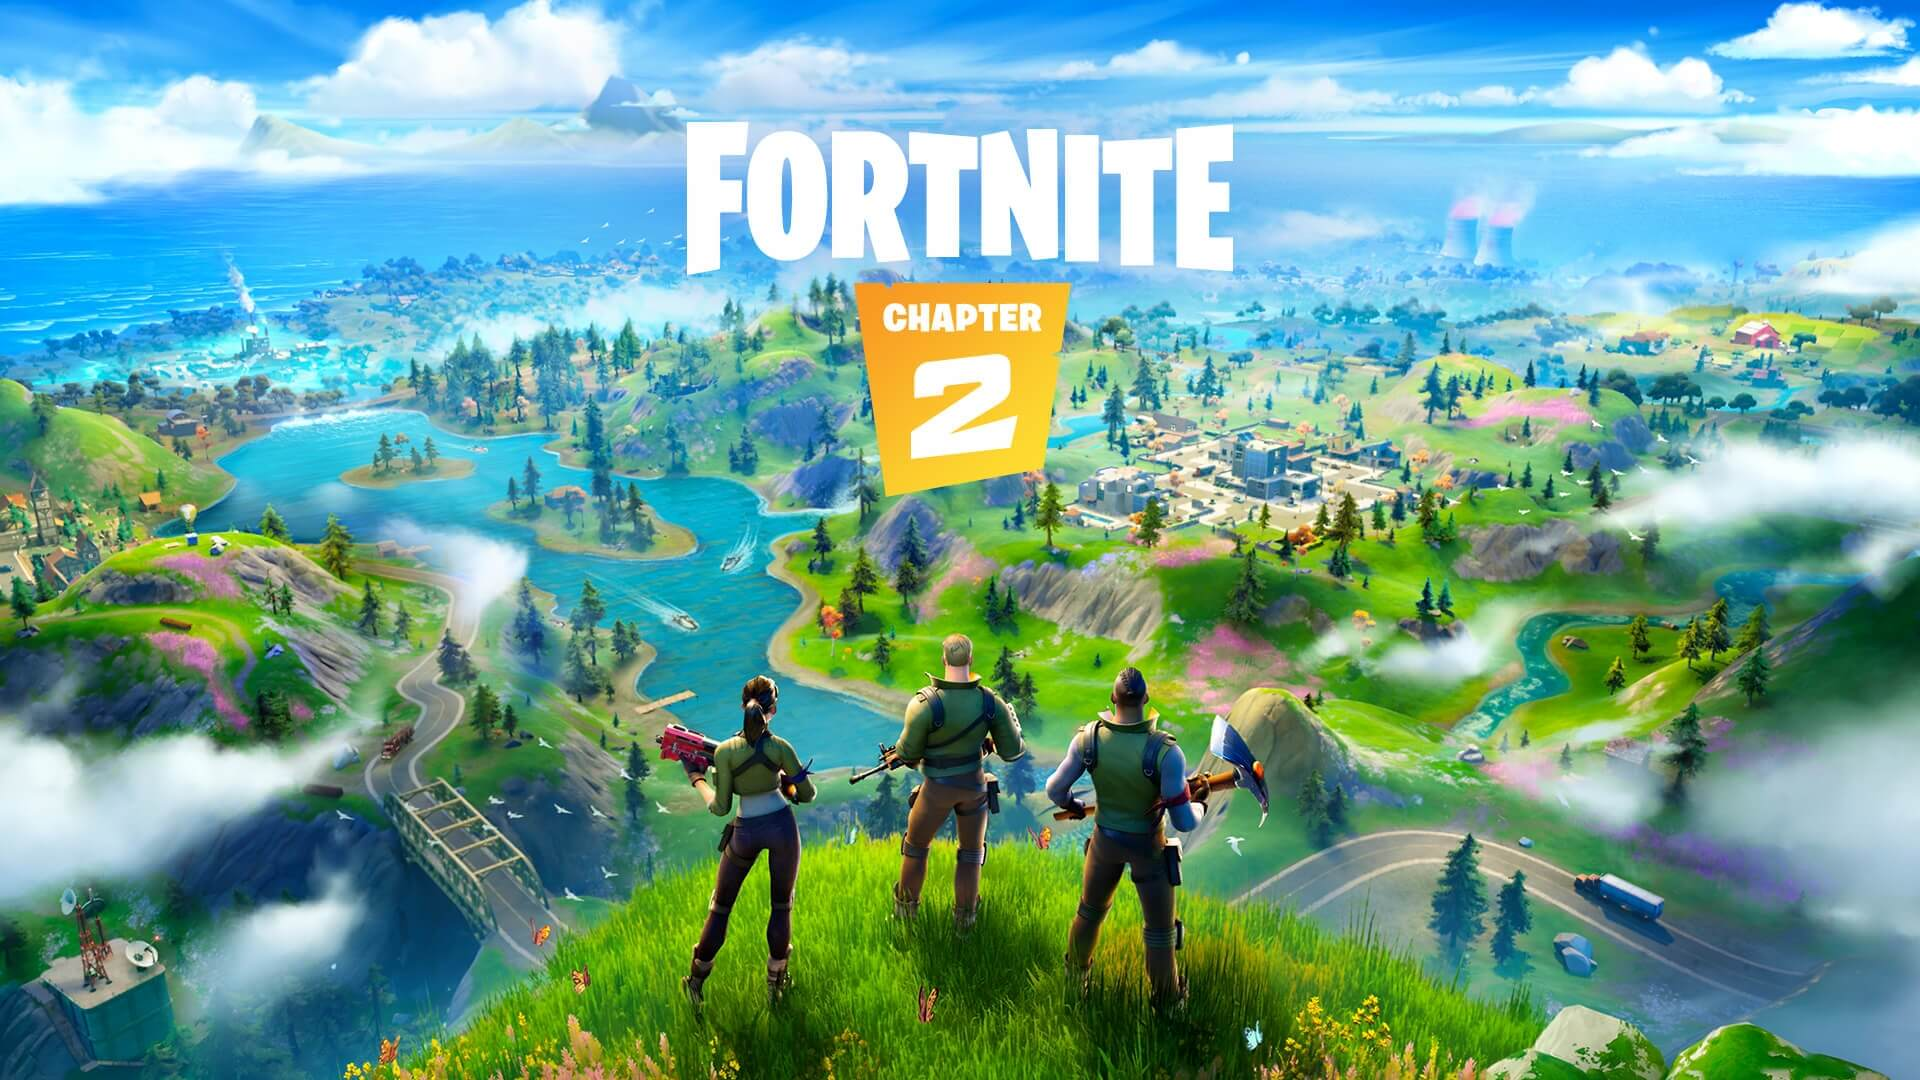 What Is The Highest Mountain In Fortnite What Is The Highest Mountain In Fortnite Chapter 2 Gamenvoy